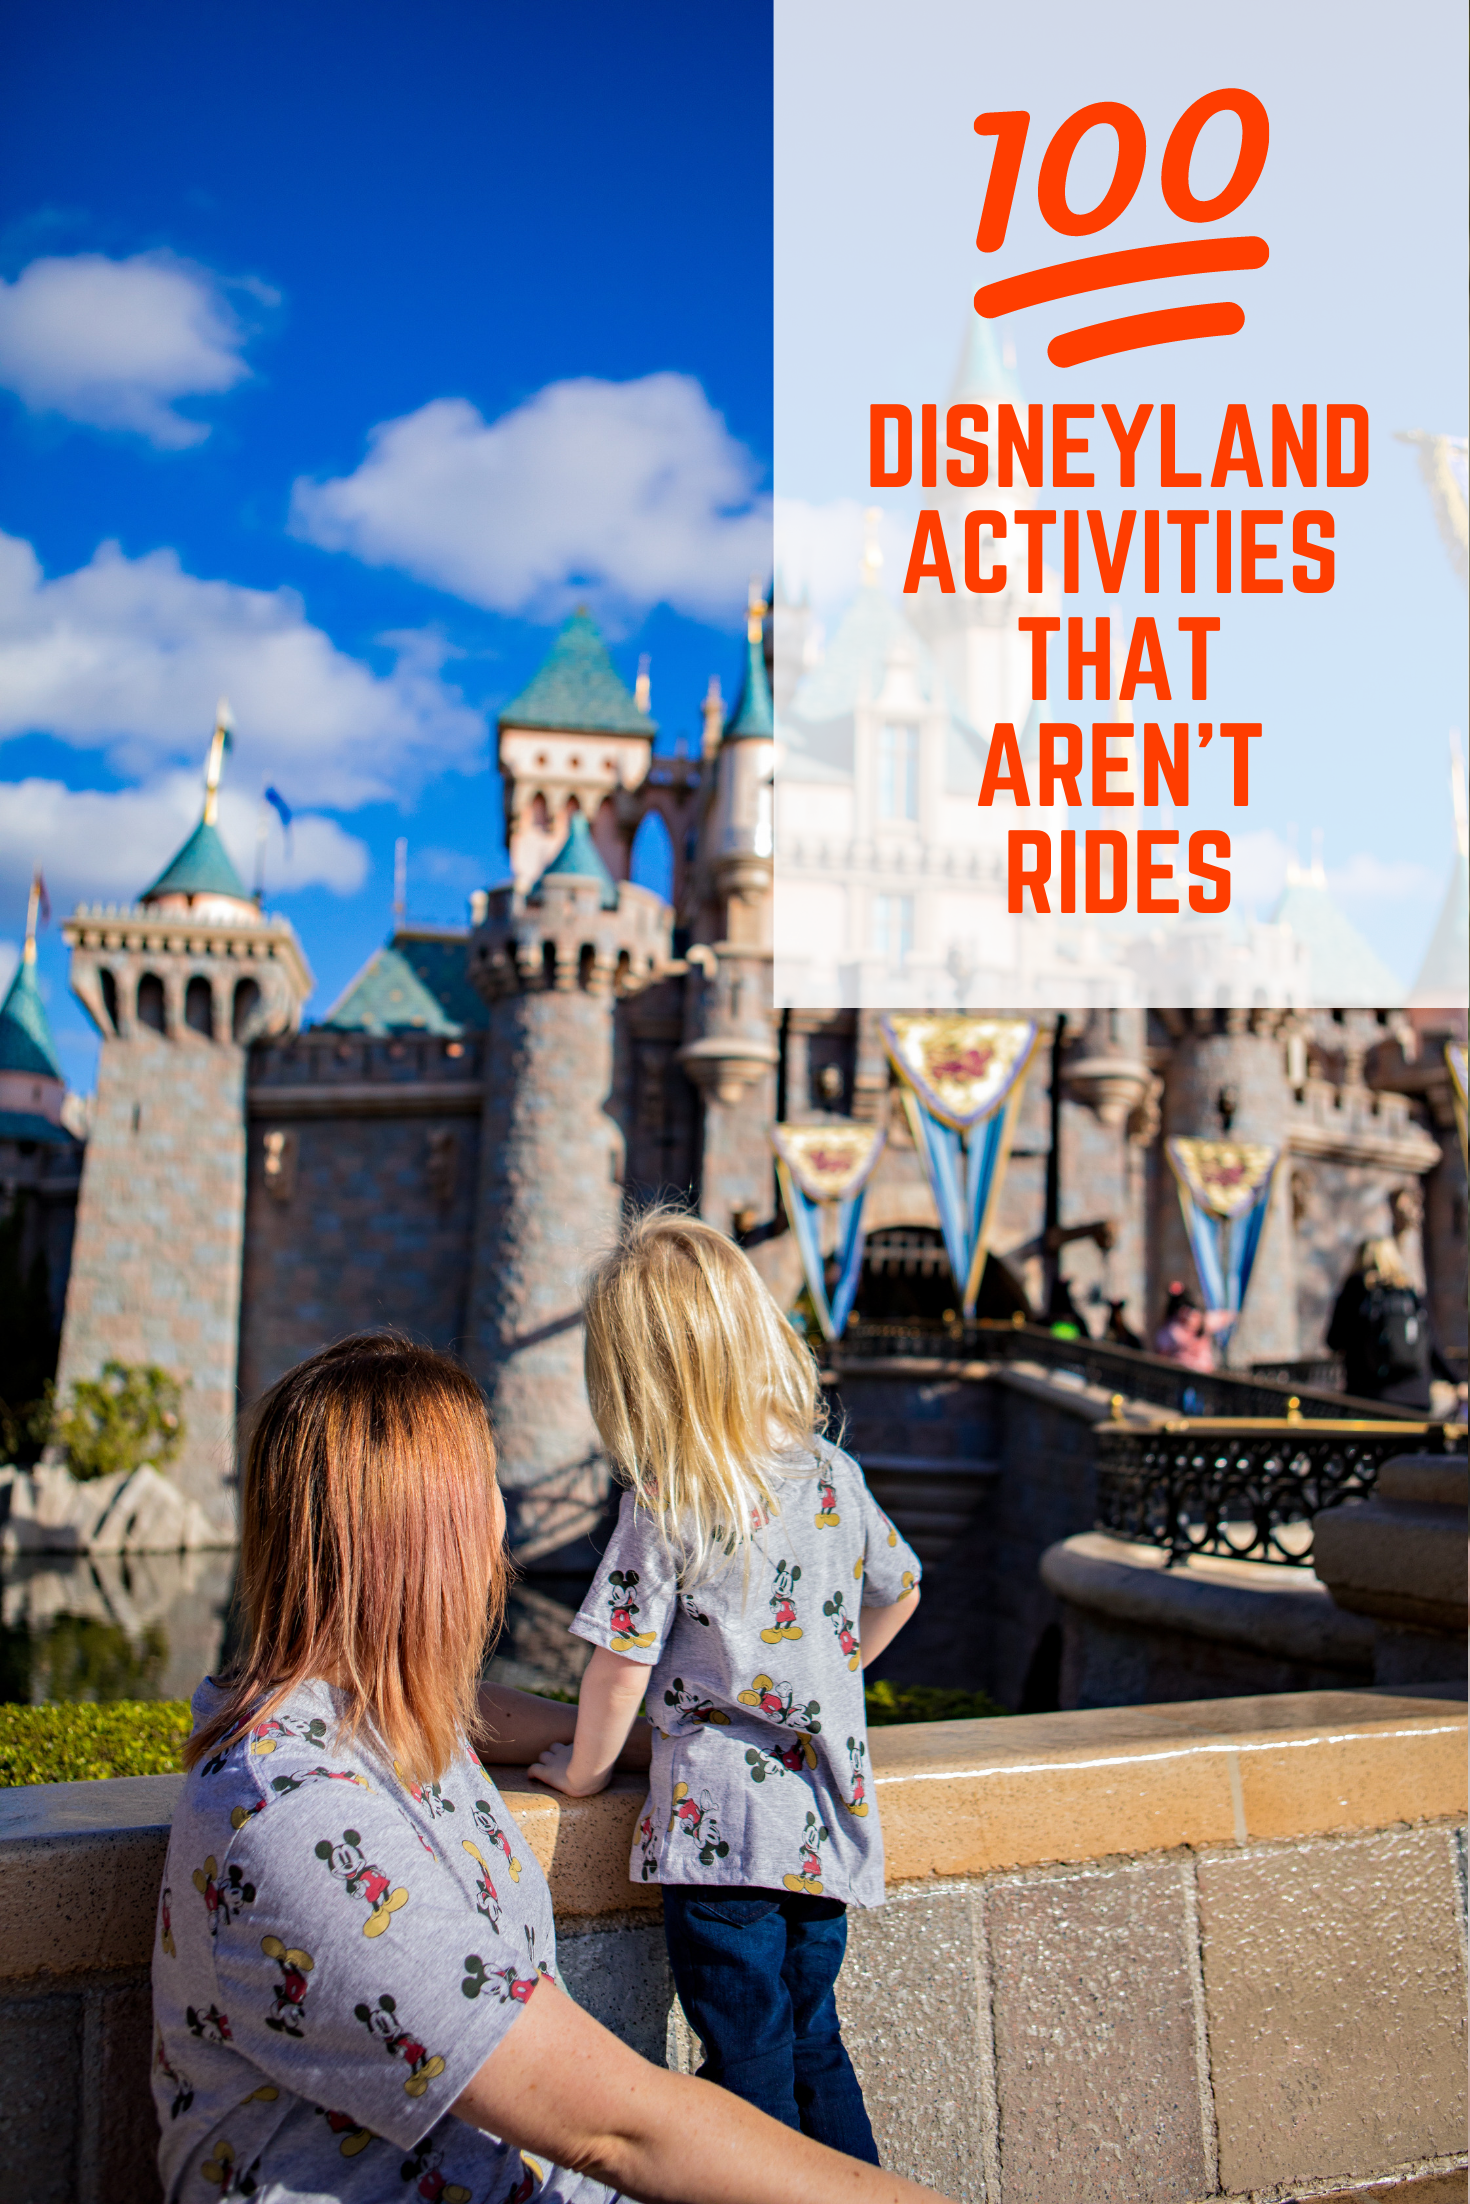 Wondering what you can do at Disneyland that isn't a ride? These Disneyland Secrets are the ticket, the list contains over 100 Disneyland Activities that AREN'T rides!